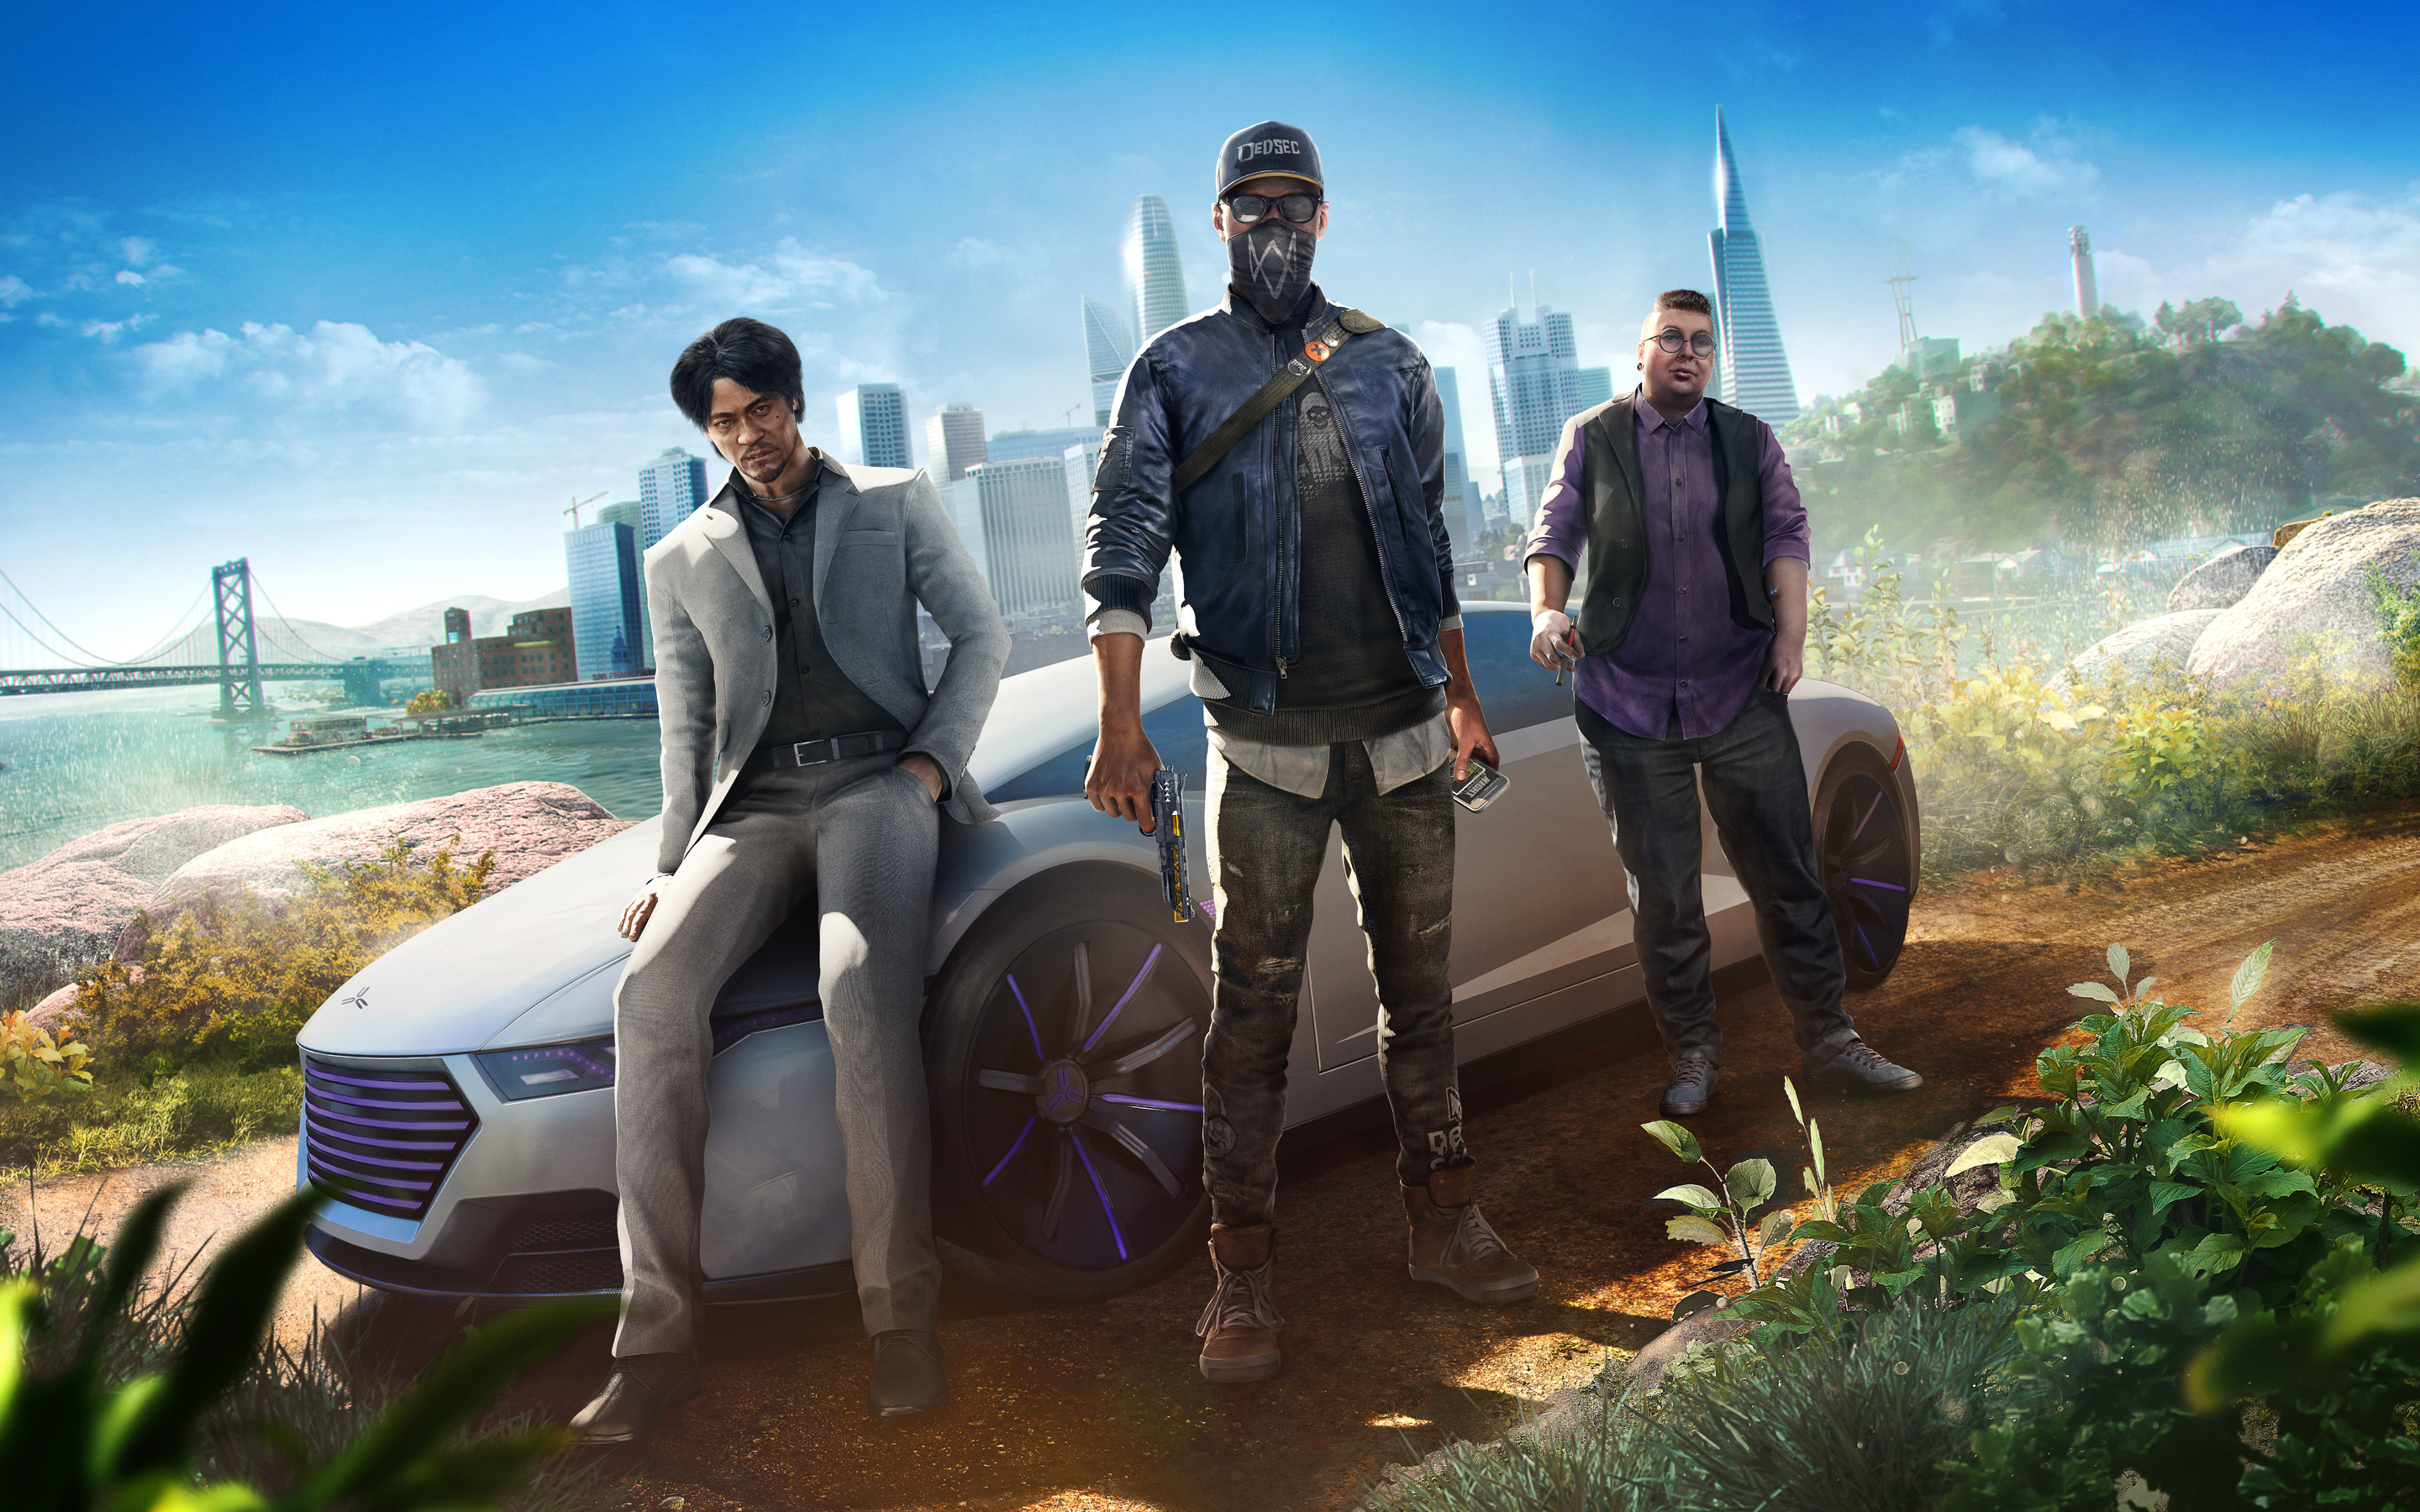 Watch Dogs 2 Human Conditions Dlc 4k 8k Hd Wallpapers